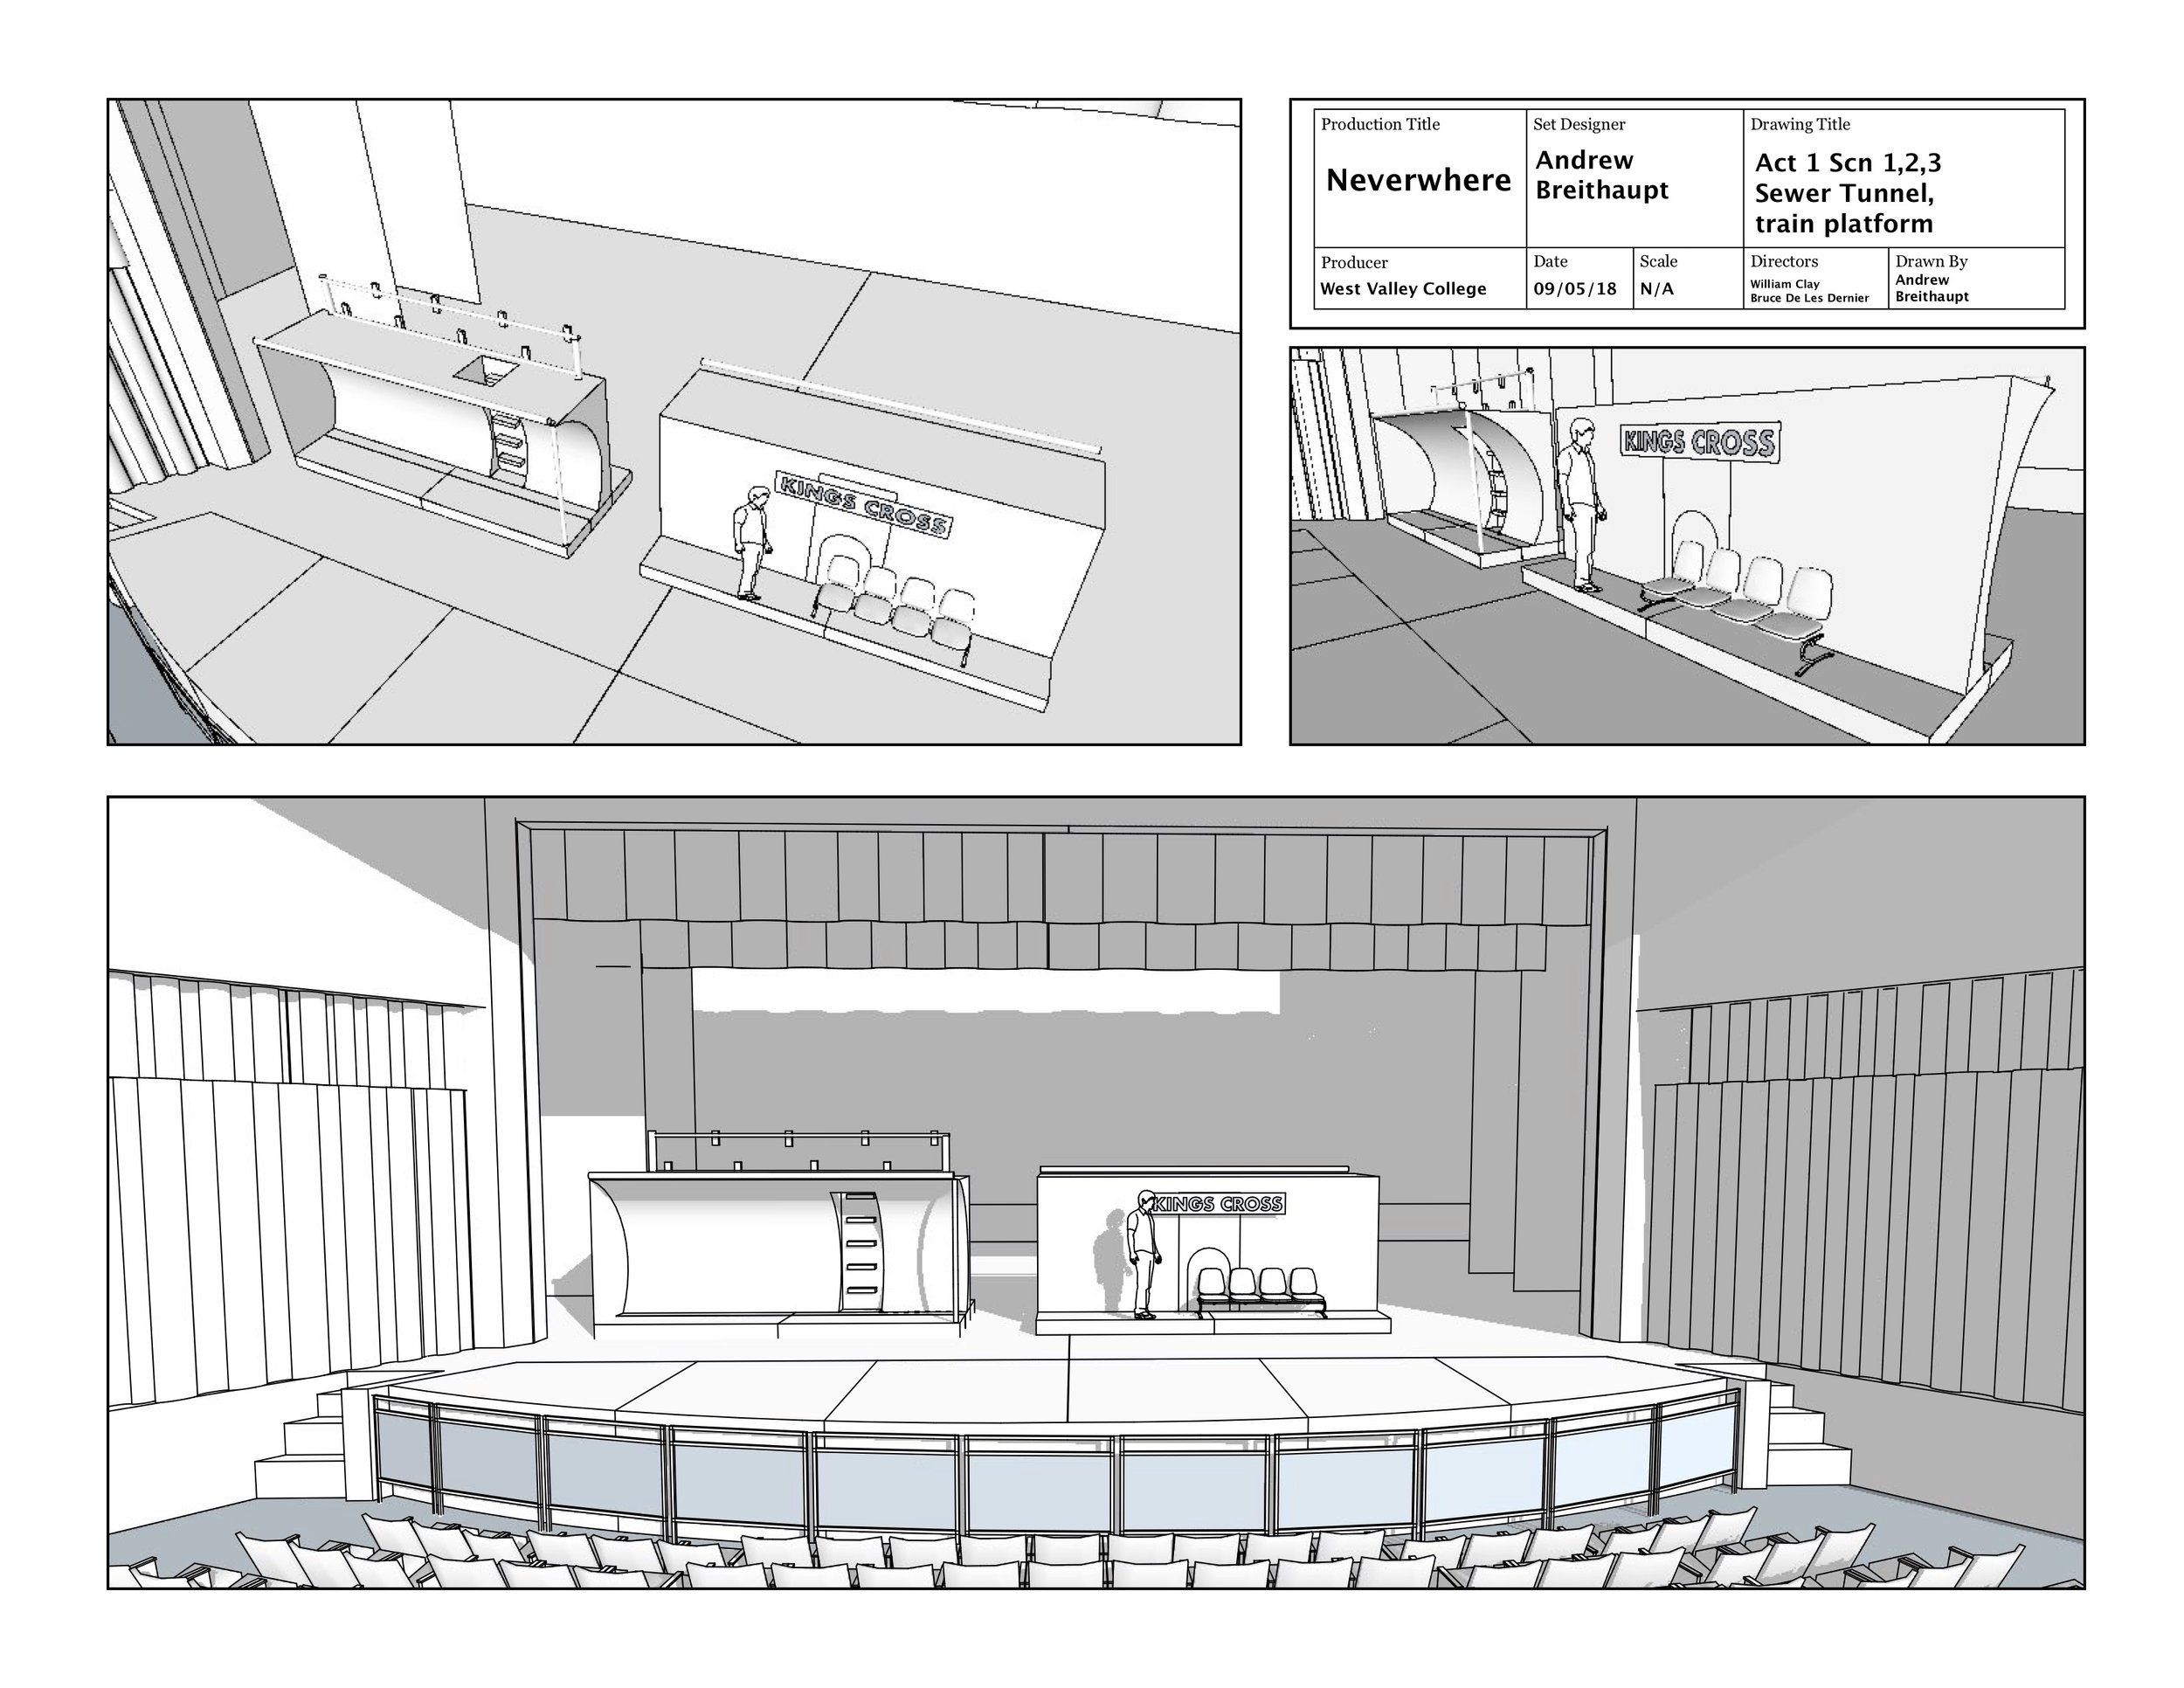 Neverwhere Act 1 Scn1 concept layout